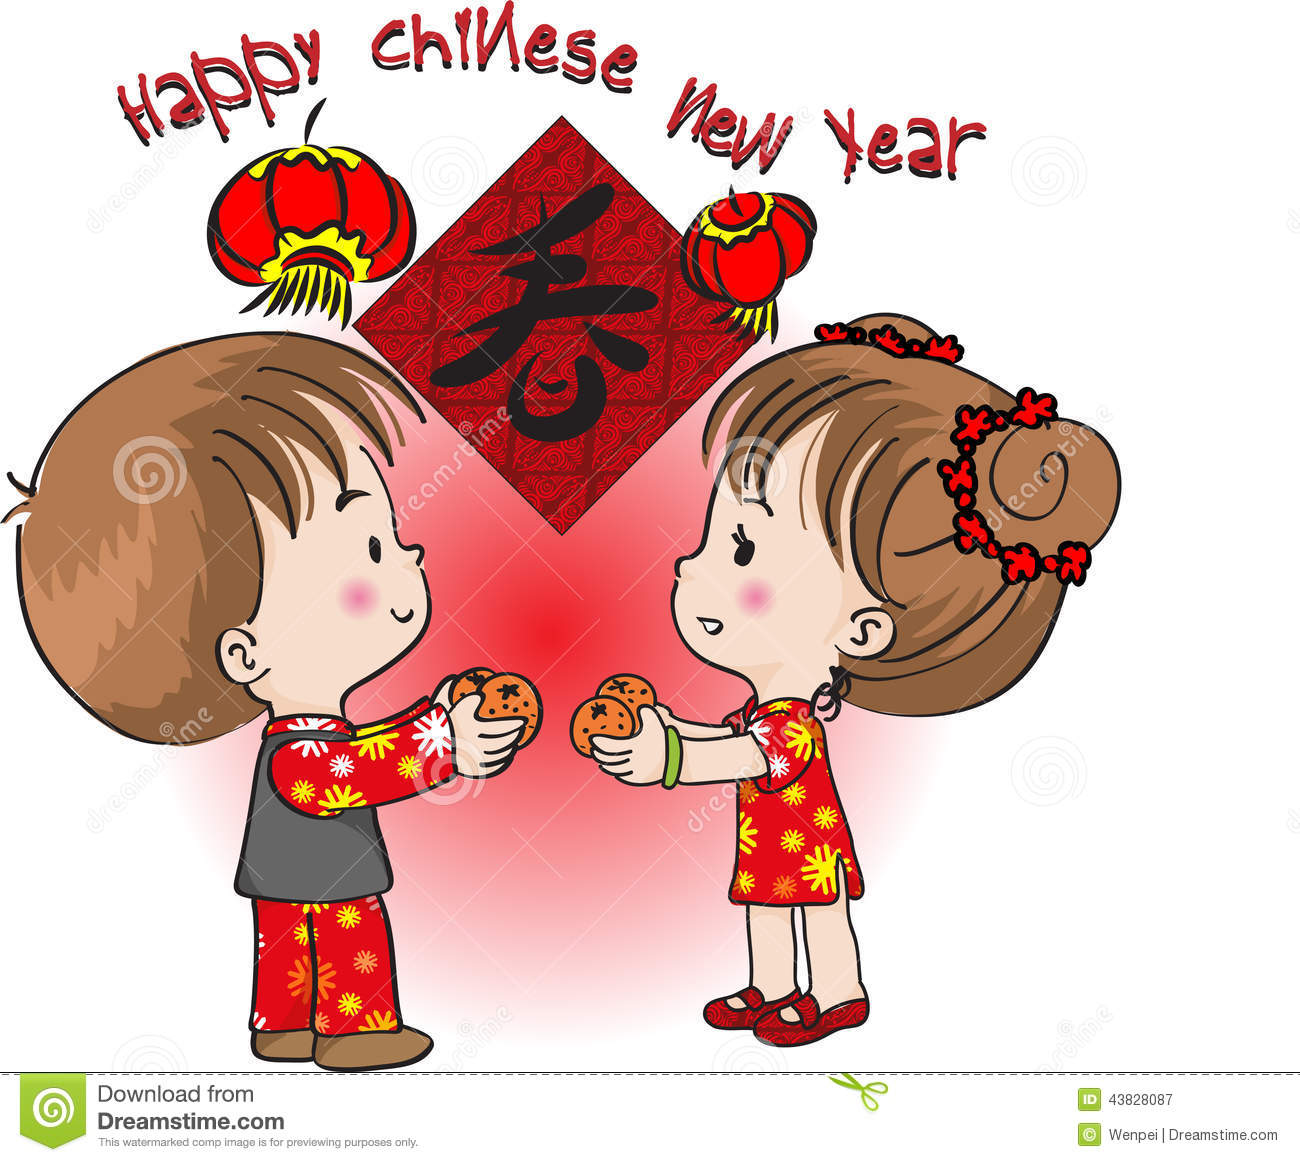 happy chinese new year - How Do You Say Happy New Years In Chinese